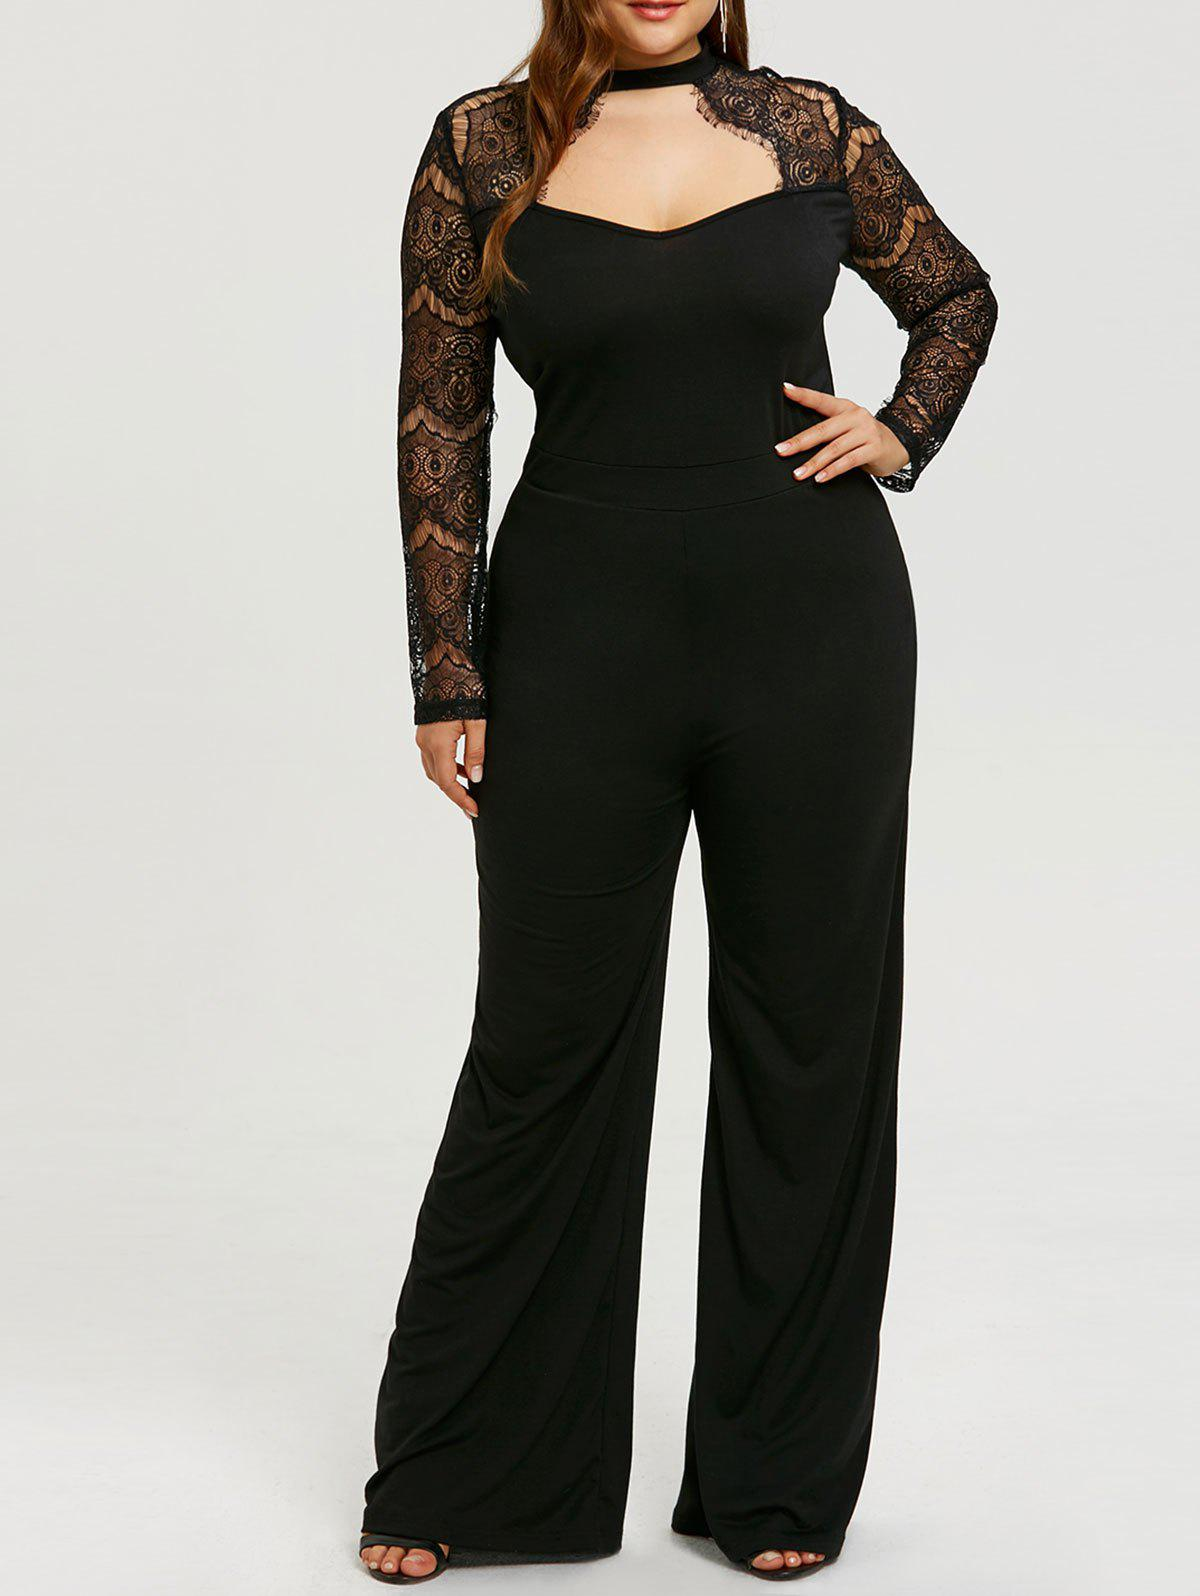 6d8270c7cae 57% OFF   2019 Lace Sleeve Plus Size Cut Out Jumpsuit